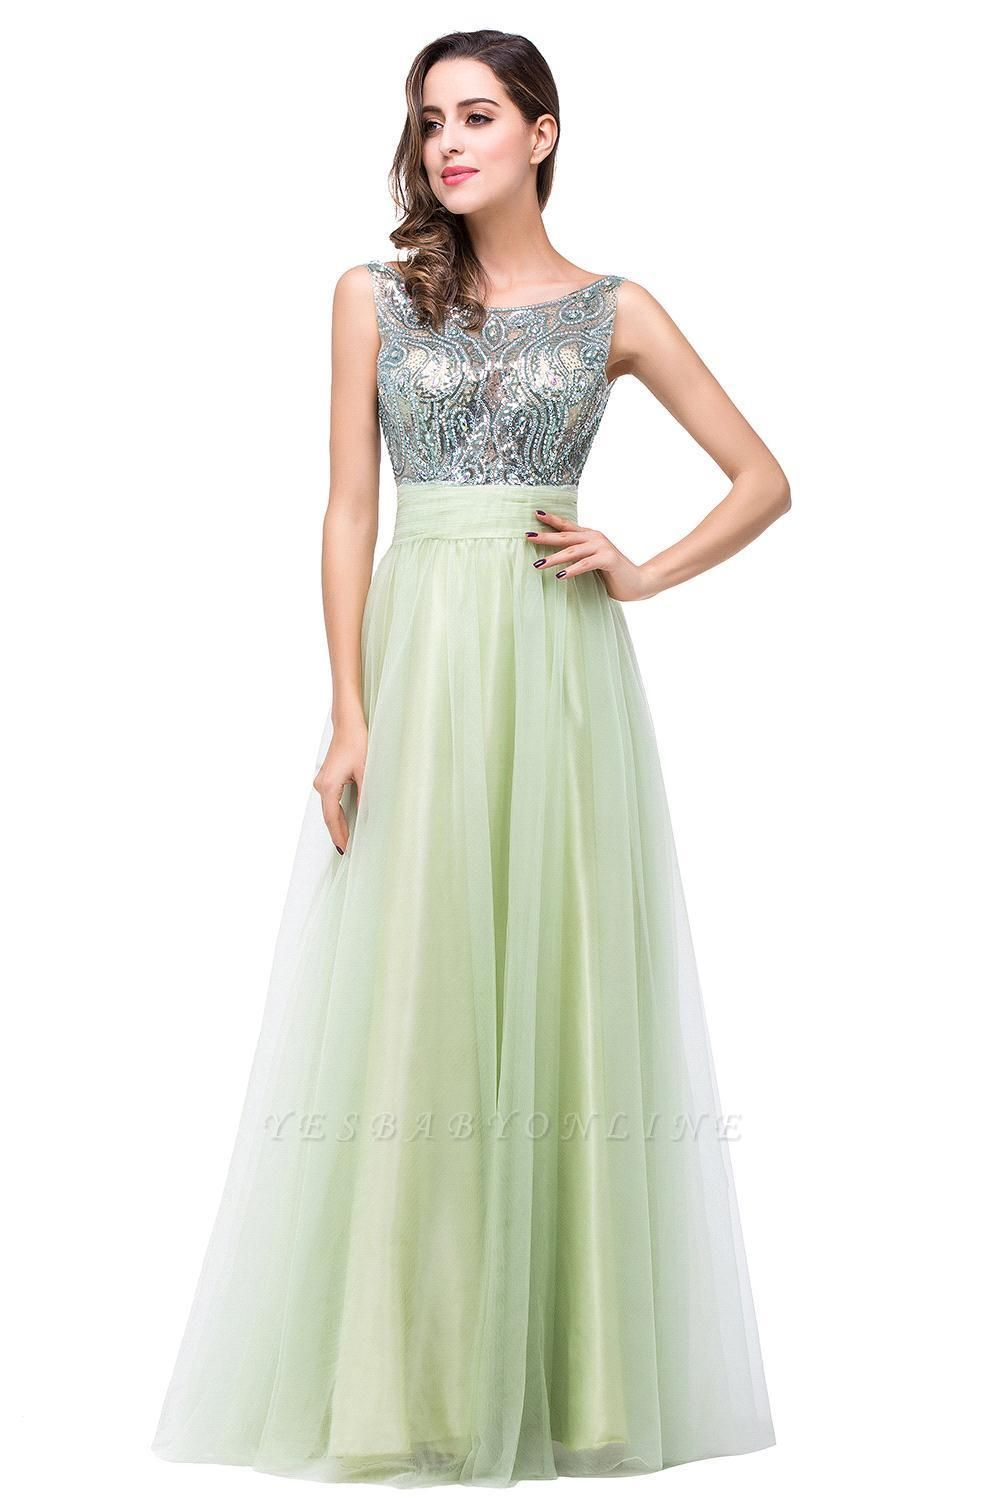 Scoop-Neckline Long Crystal A-line Charming Sleevless  Prom-Dress